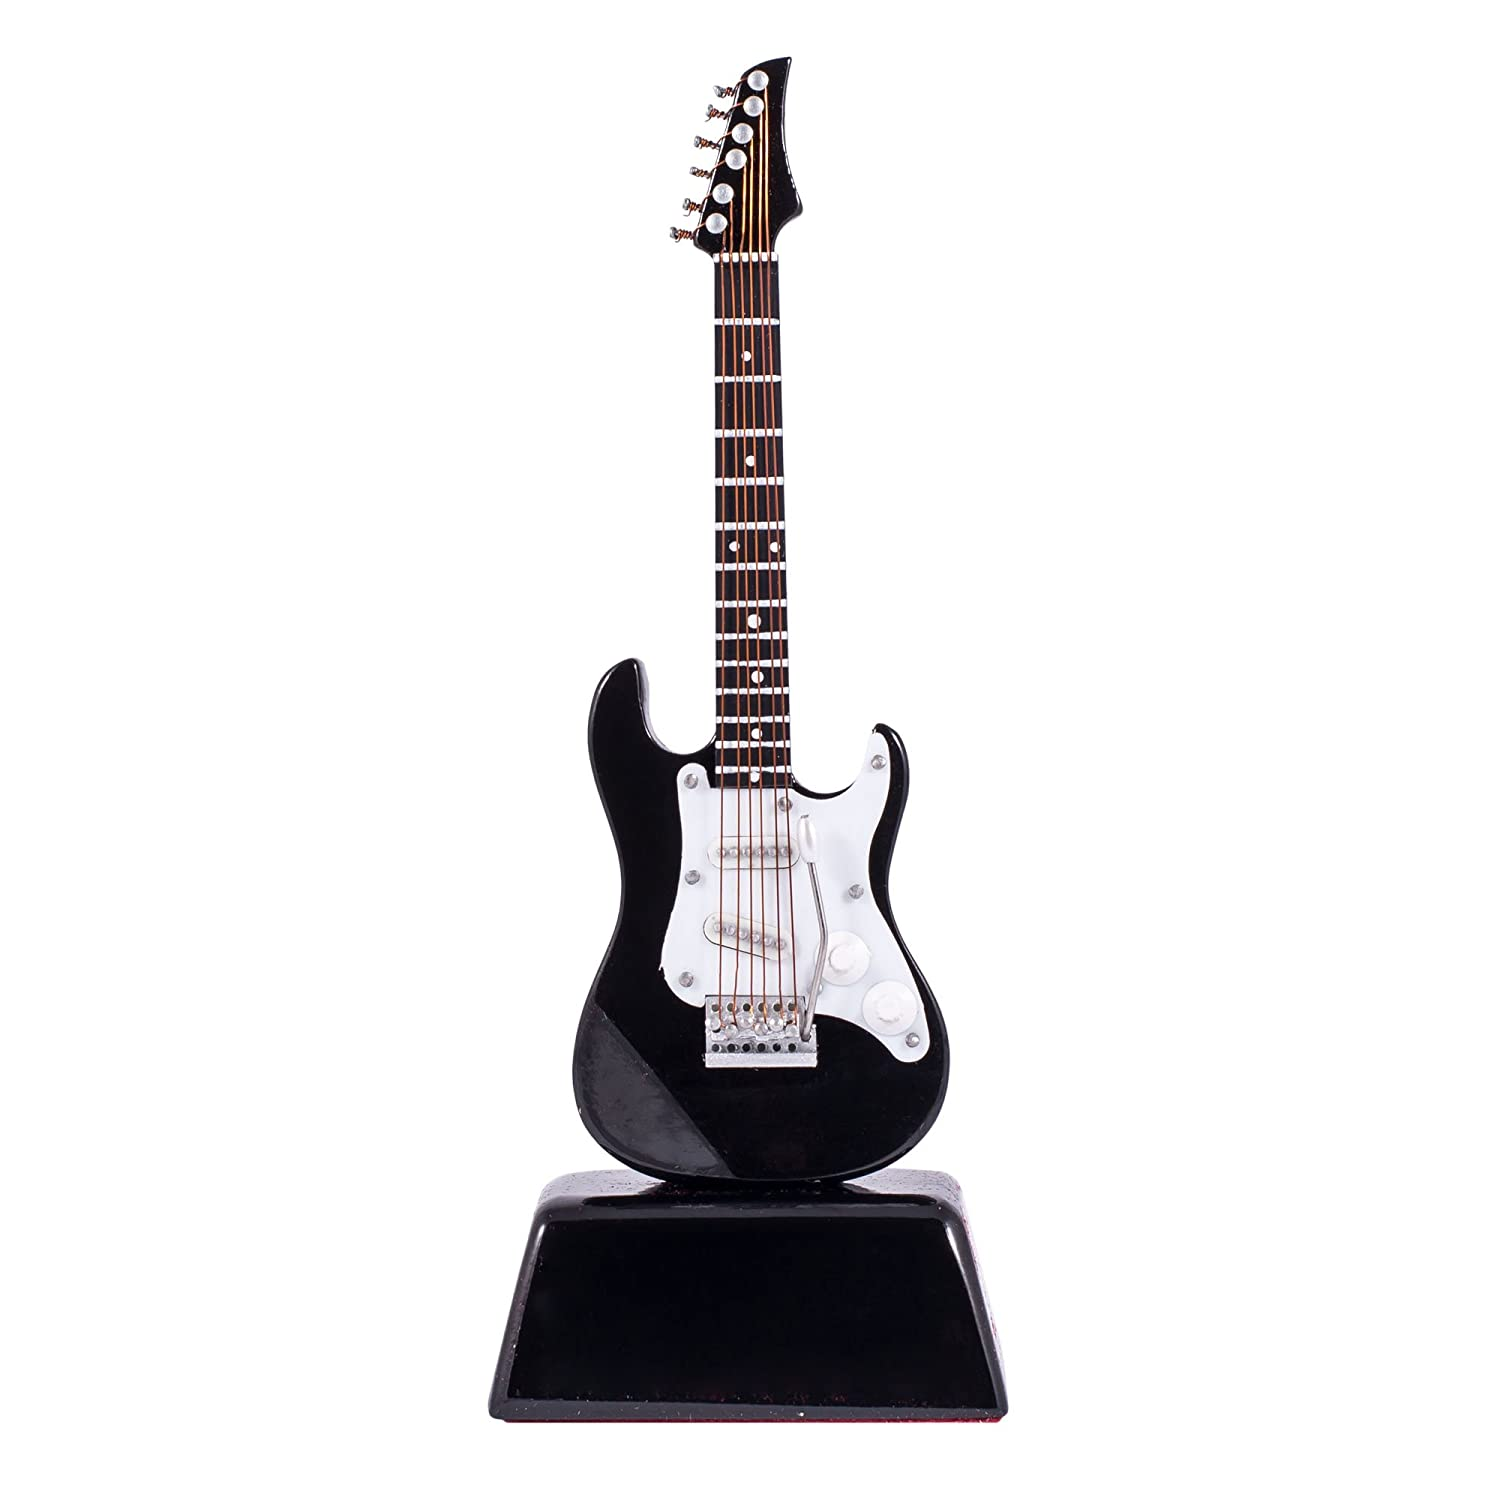 gibson black electric guitar music instrument miniature